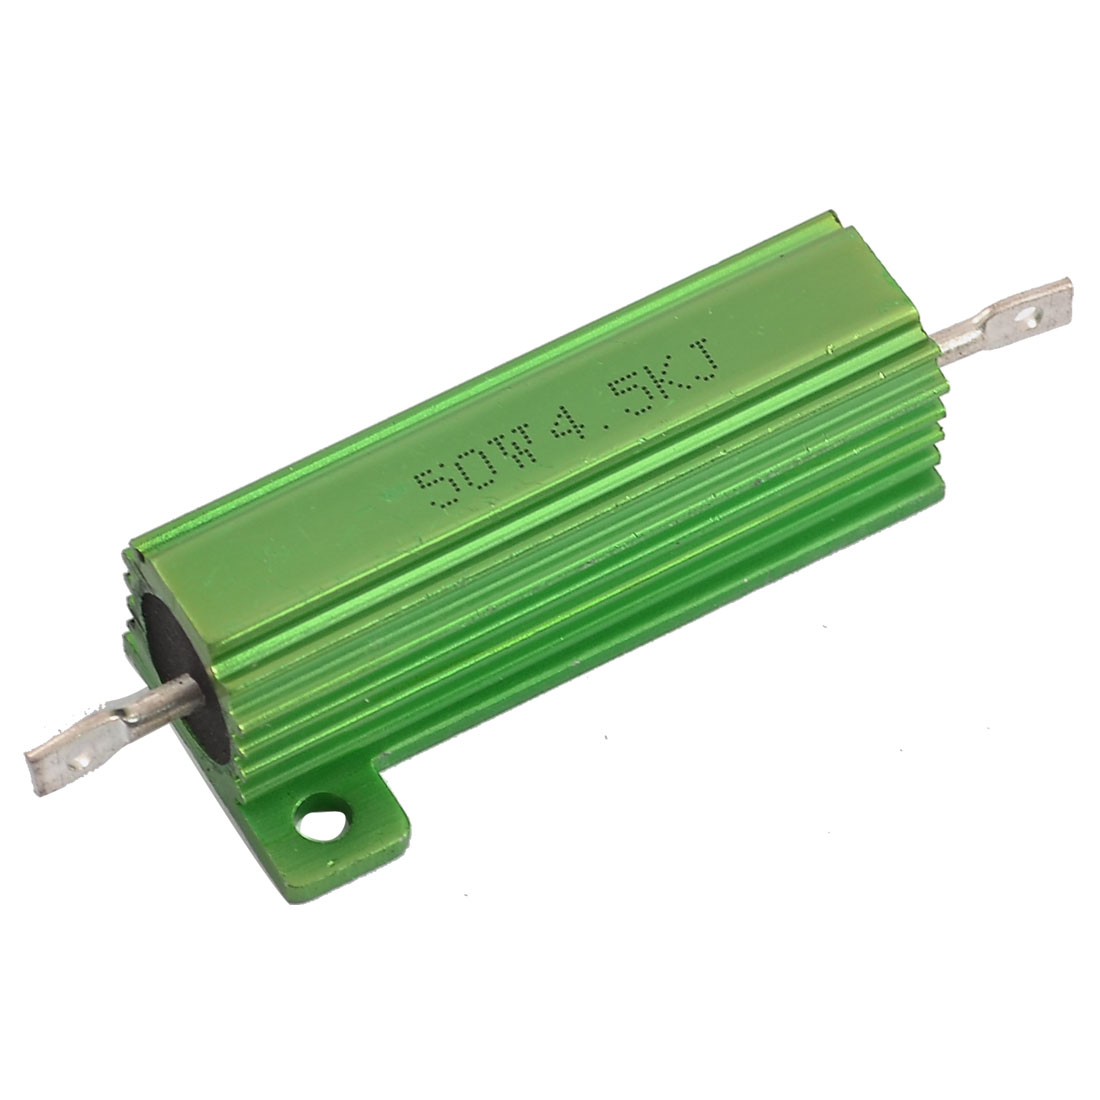 Chassis Mounted 50W 4.5K Ohm 5% Aluminum Case Wirewound Resistor Green